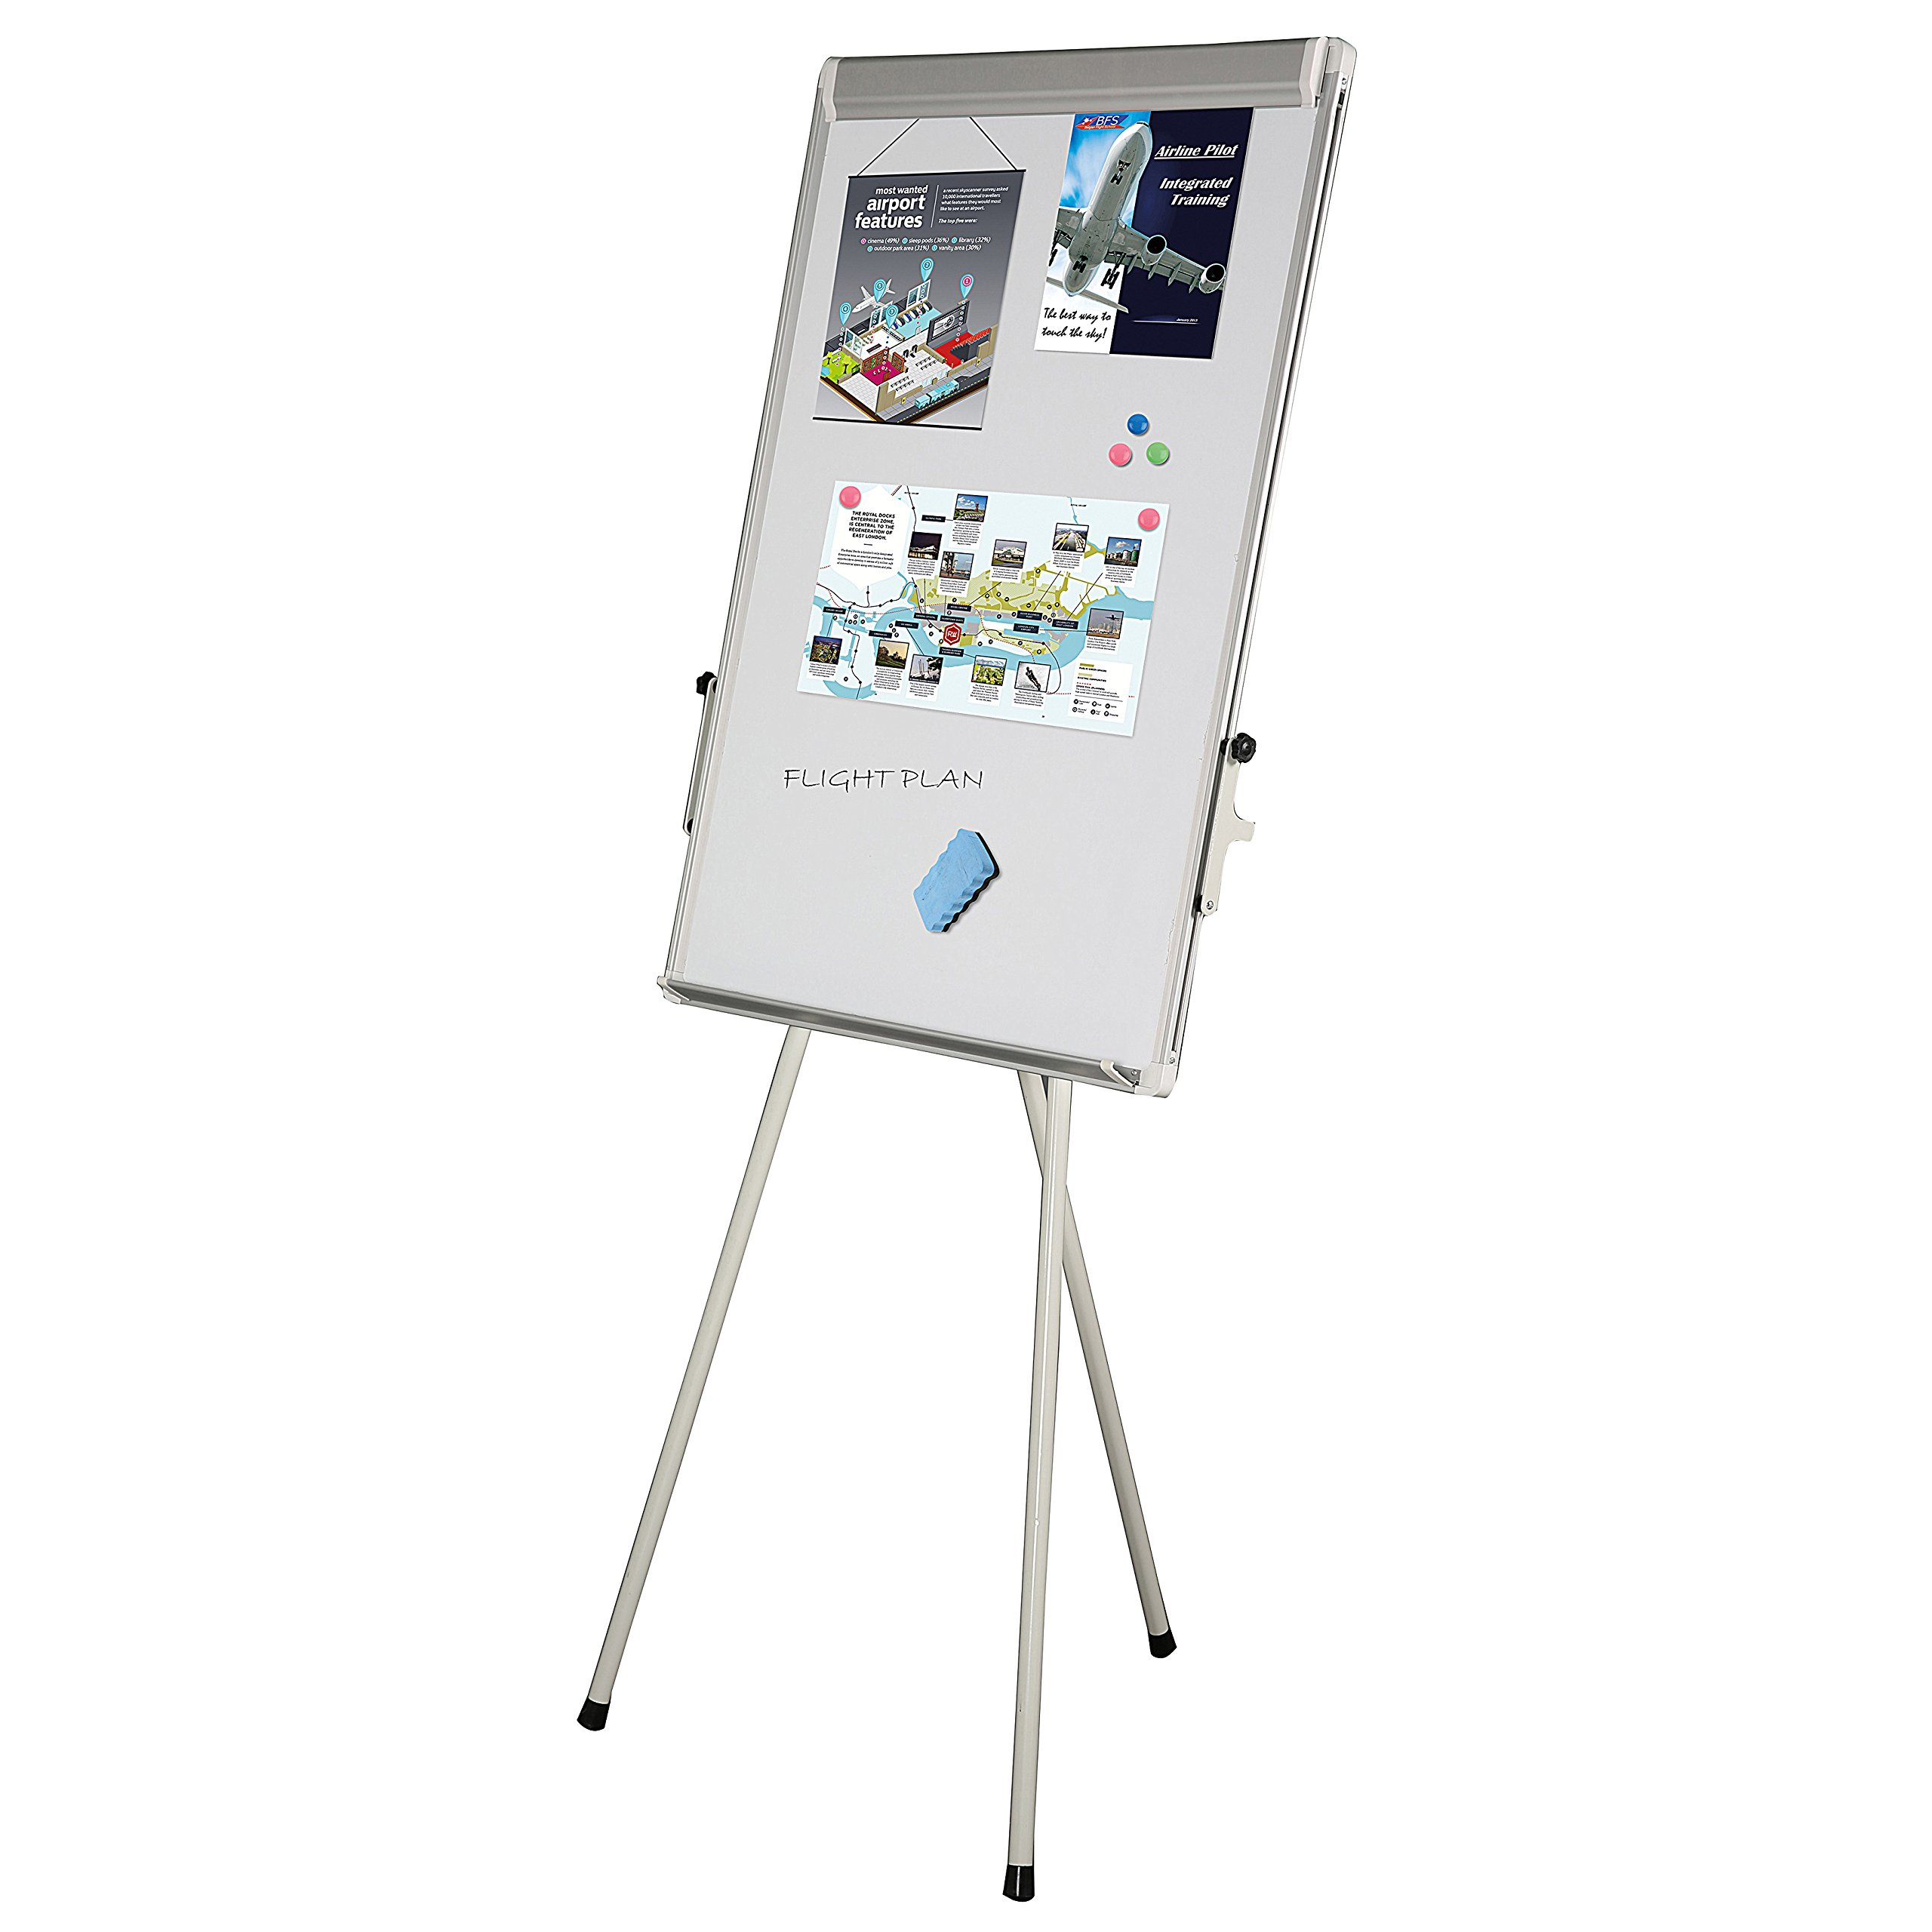 23x 35 height Adjustable Easel Flip chart Stand with Magnetic Surface - Silver by M&T Displays